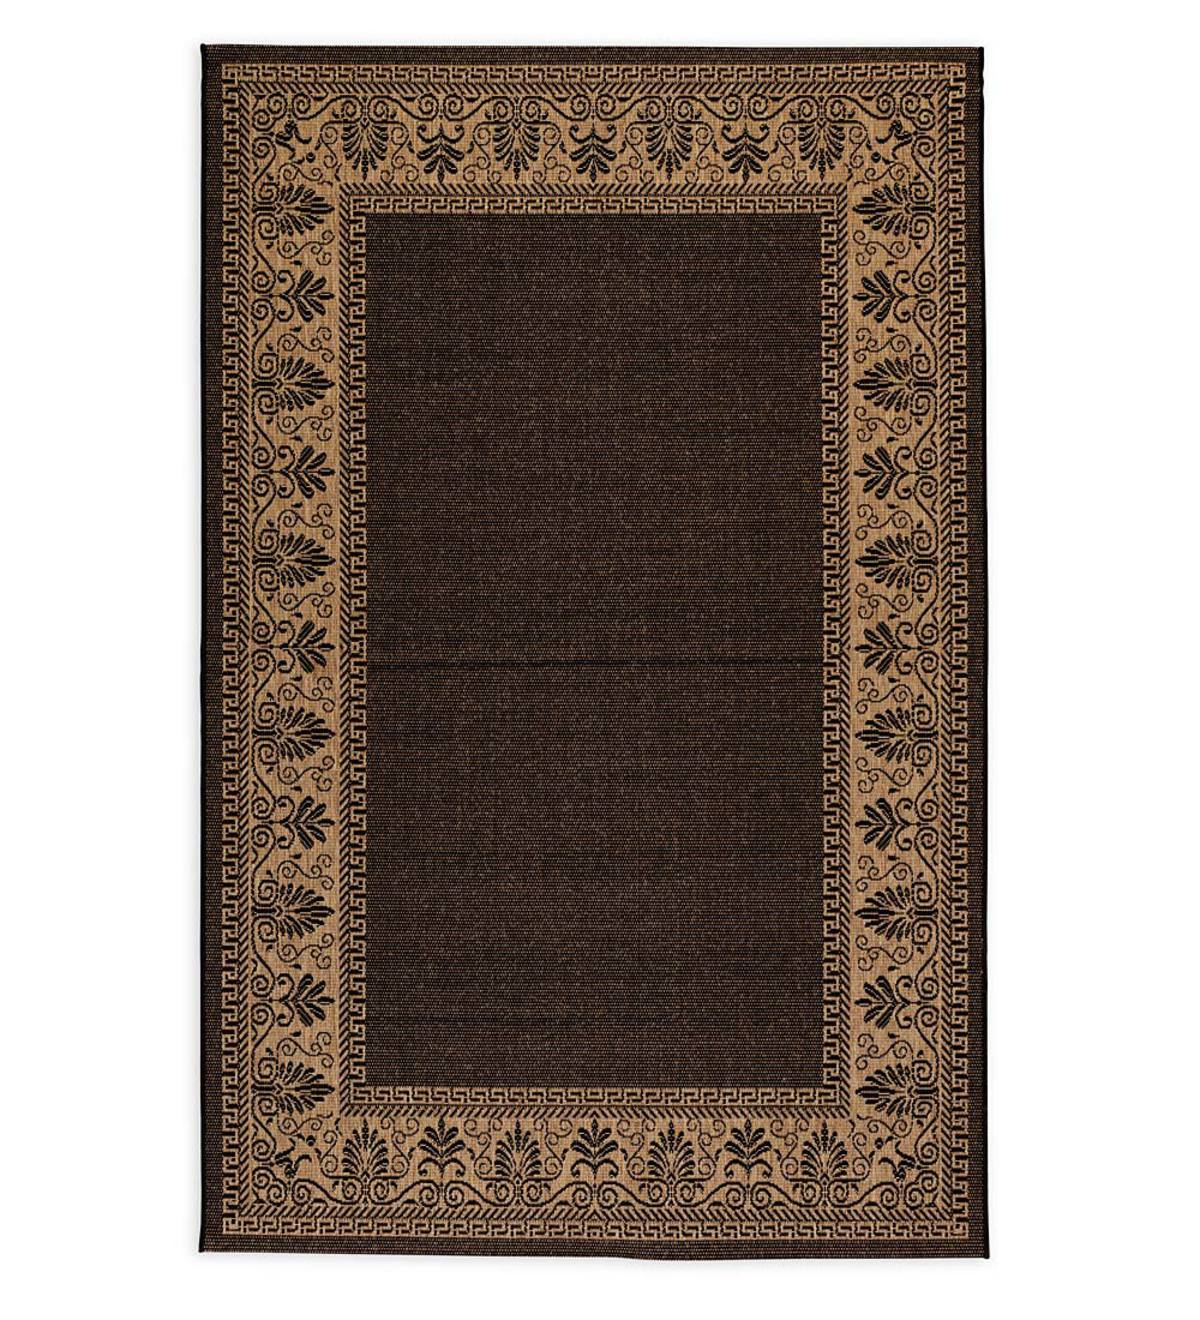 "Veranda Border Indoor/Outdoor Rug, 5'10""x 9'2"" - Black"